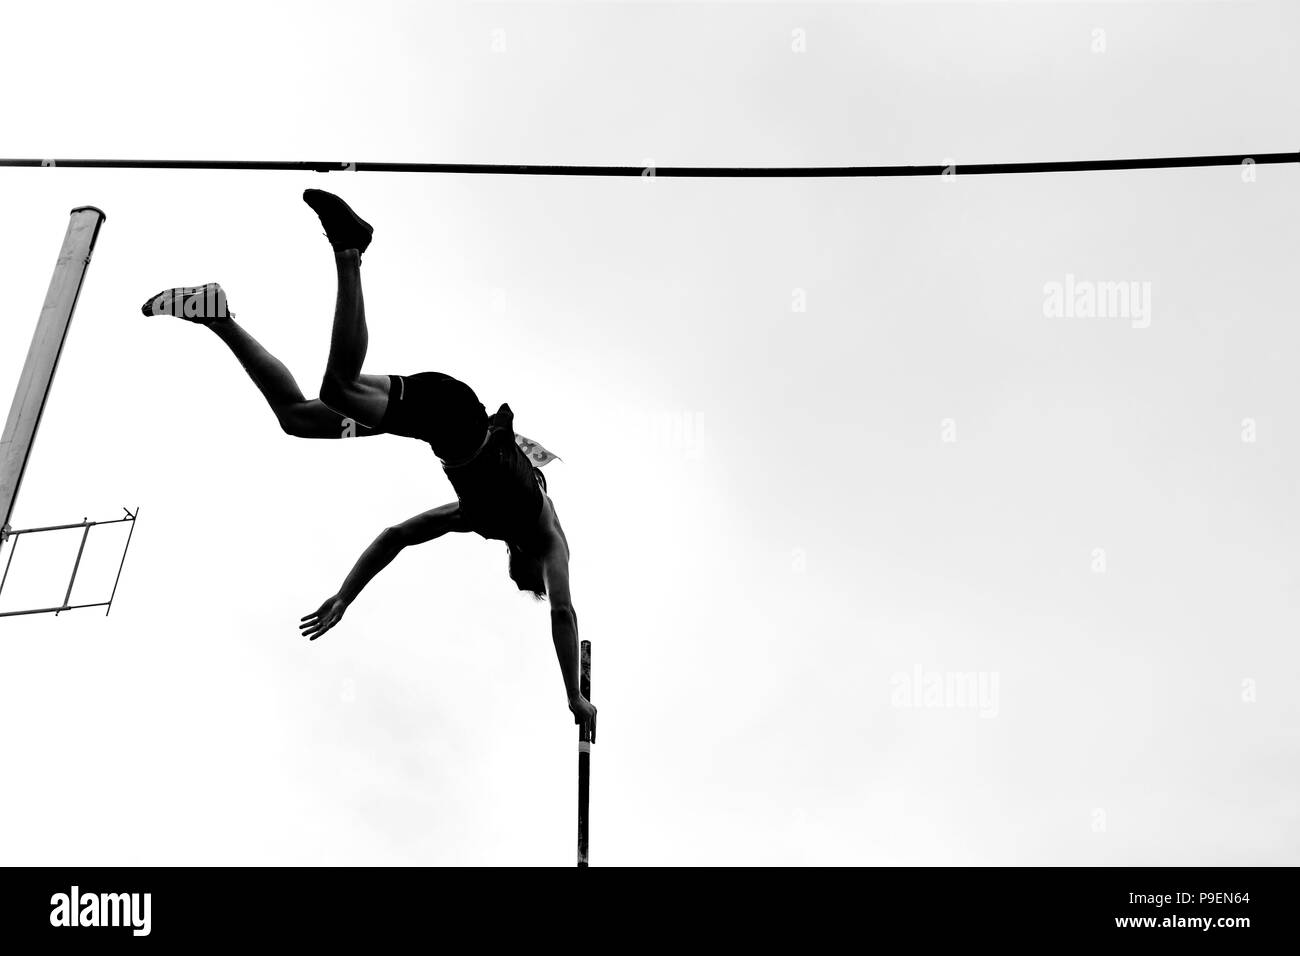 pole vault athlete pole vaulter jump in athletics black and white image - Stock Image